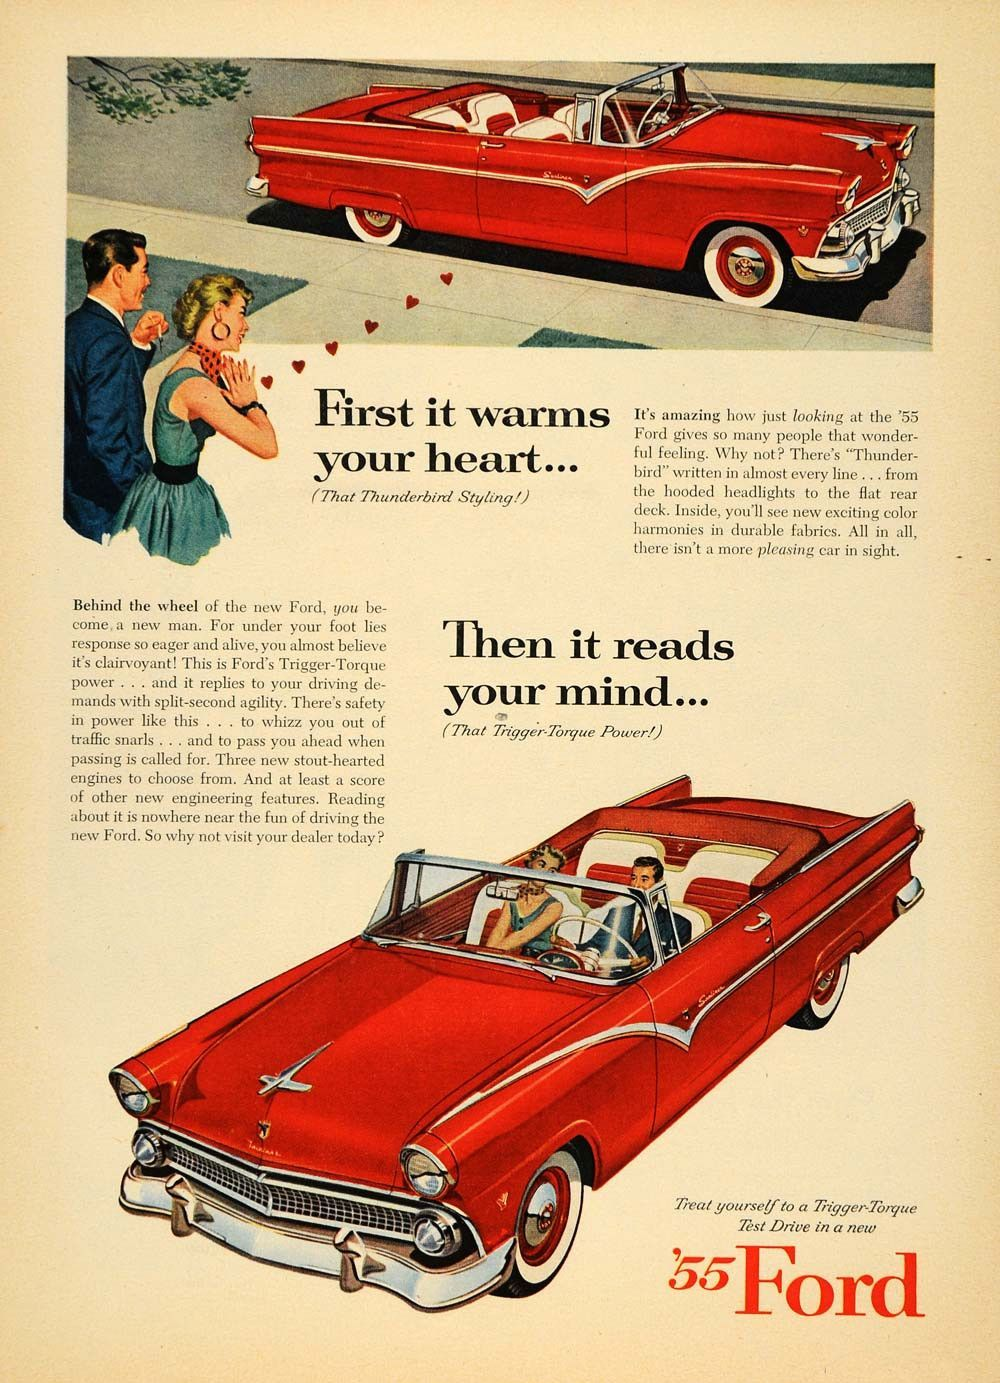 1955 ford fairlane crown victoria blog cars on line - 1955 Ad Red Ford Trigger Torque Car Automobile Hearts Original Advertising Tm6